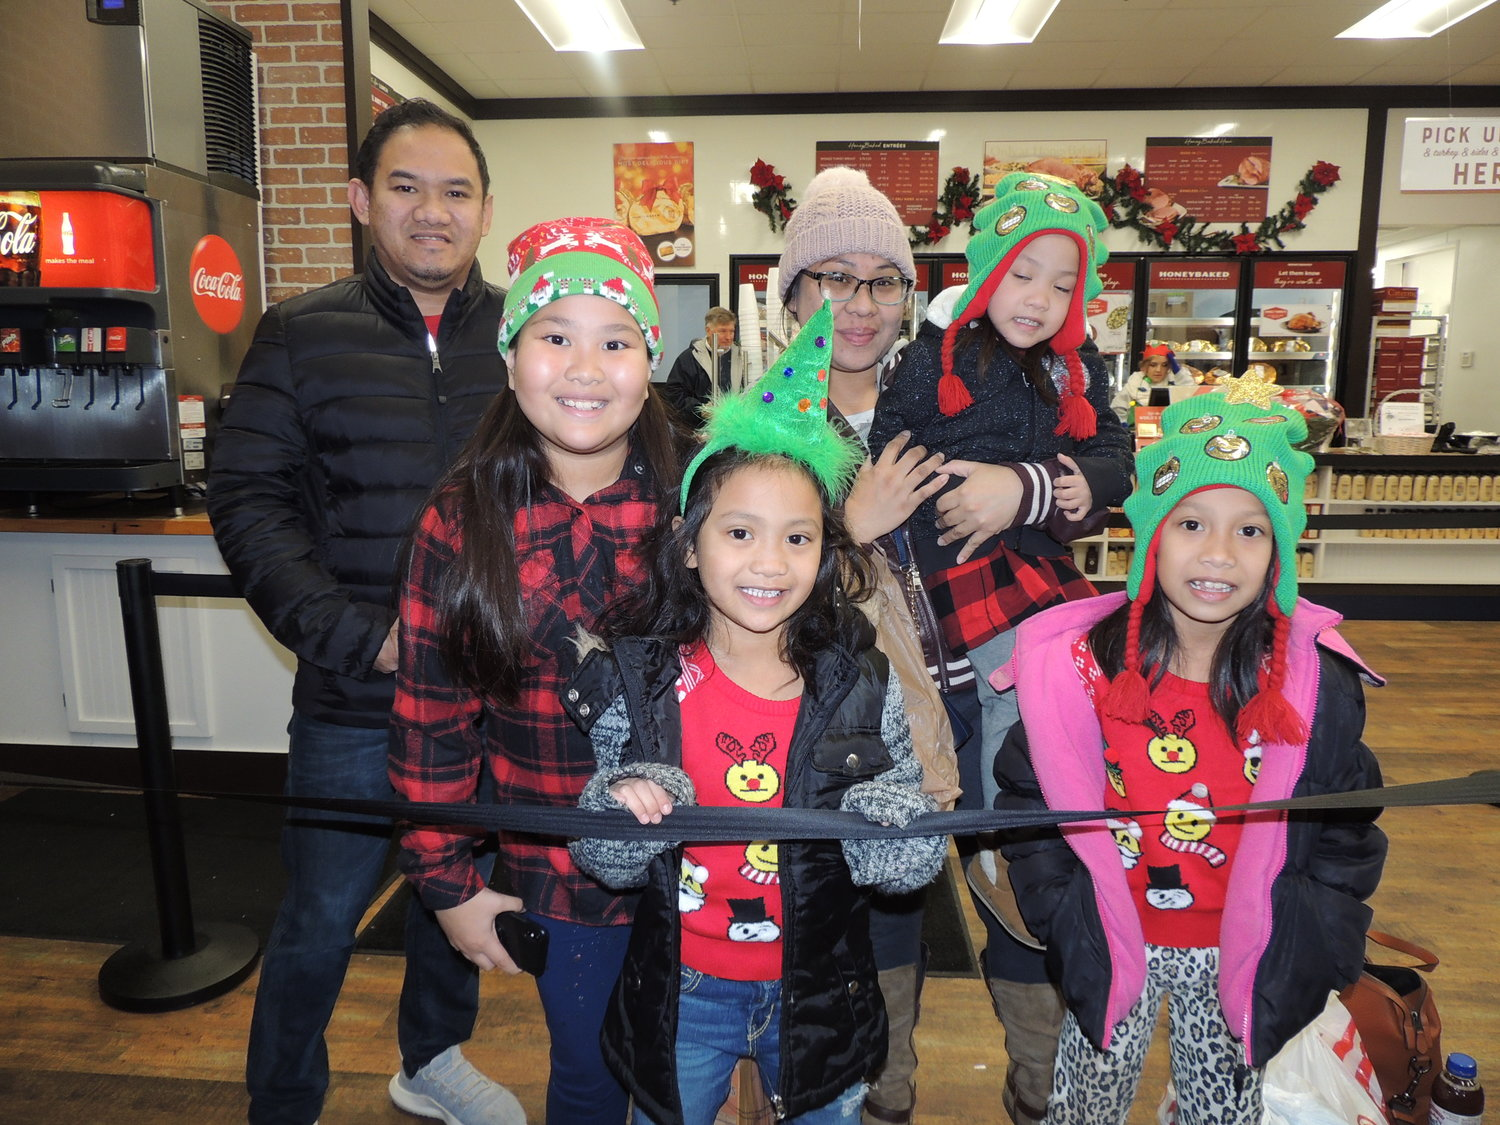 Children and parents eagerly gathered at Honey Baked Ham in Park Plaza to visit with Santa and Mrs. Claus.